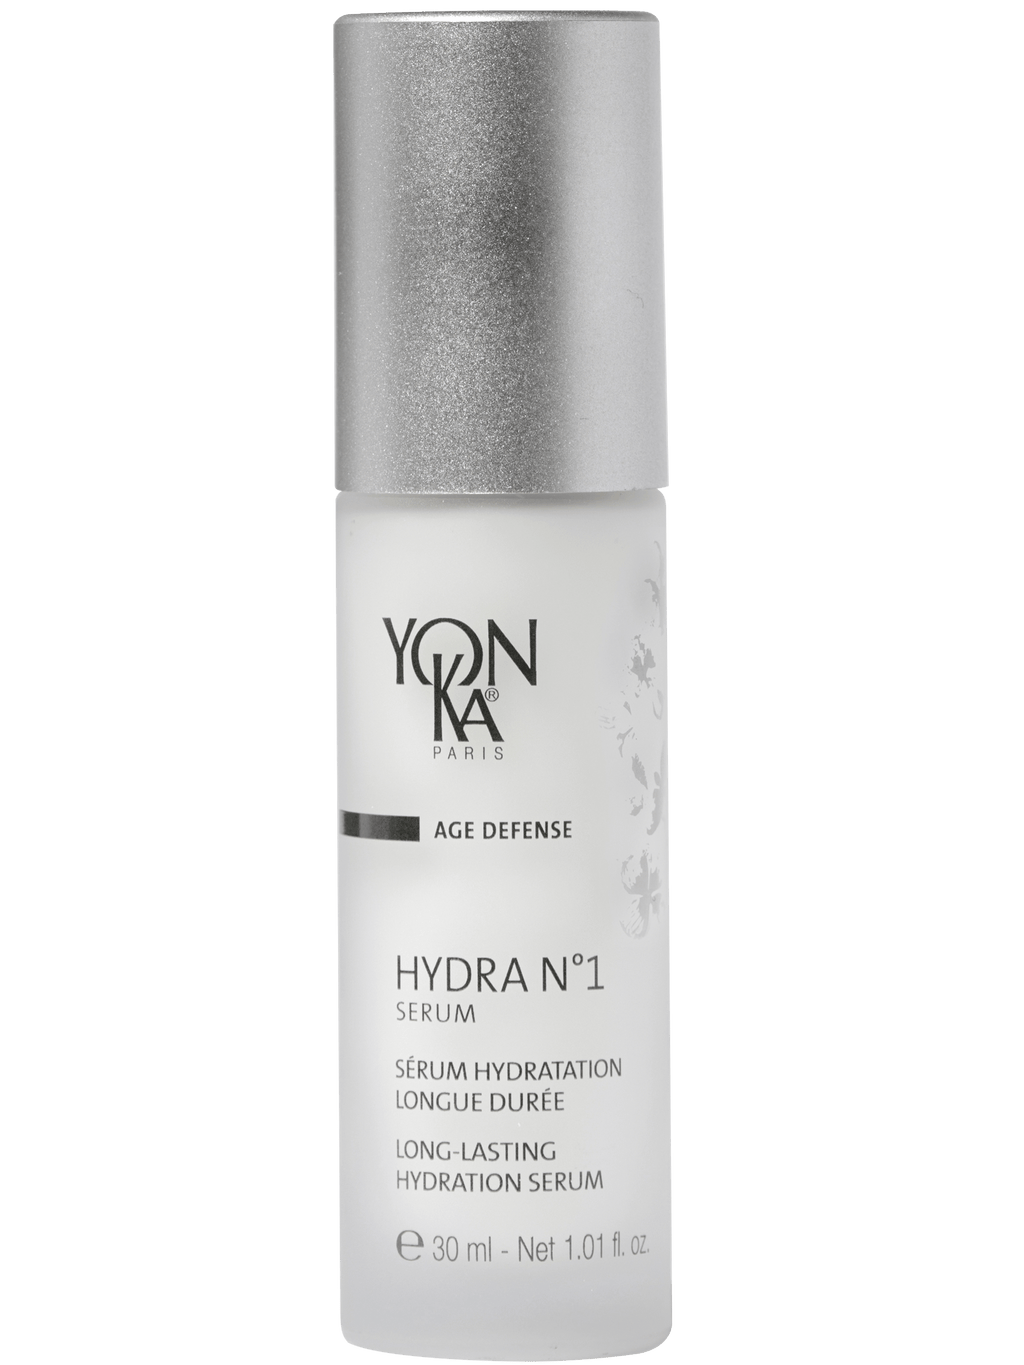 Hydra No. 1 Serum